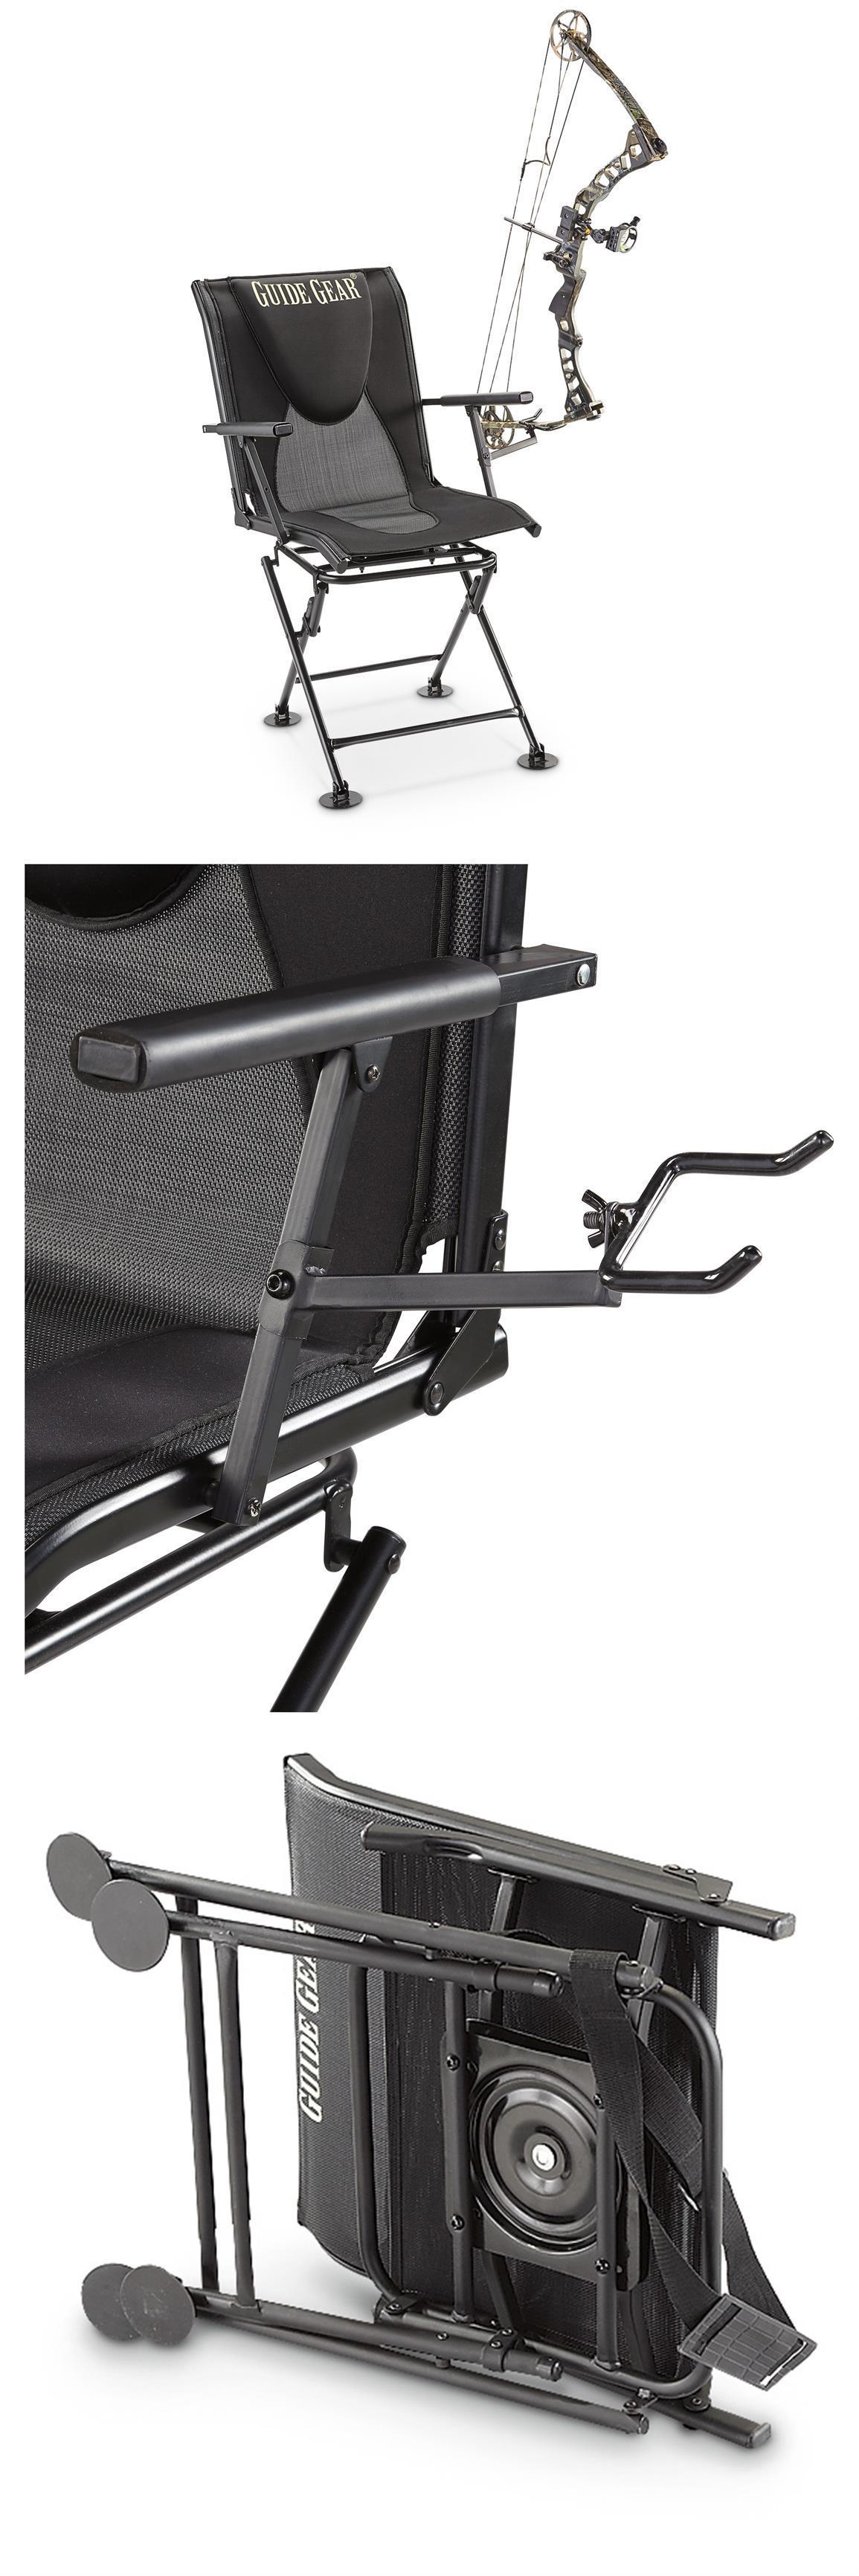 Seats and Chairs New Swivel Hunting Blind Chair Guide Gear